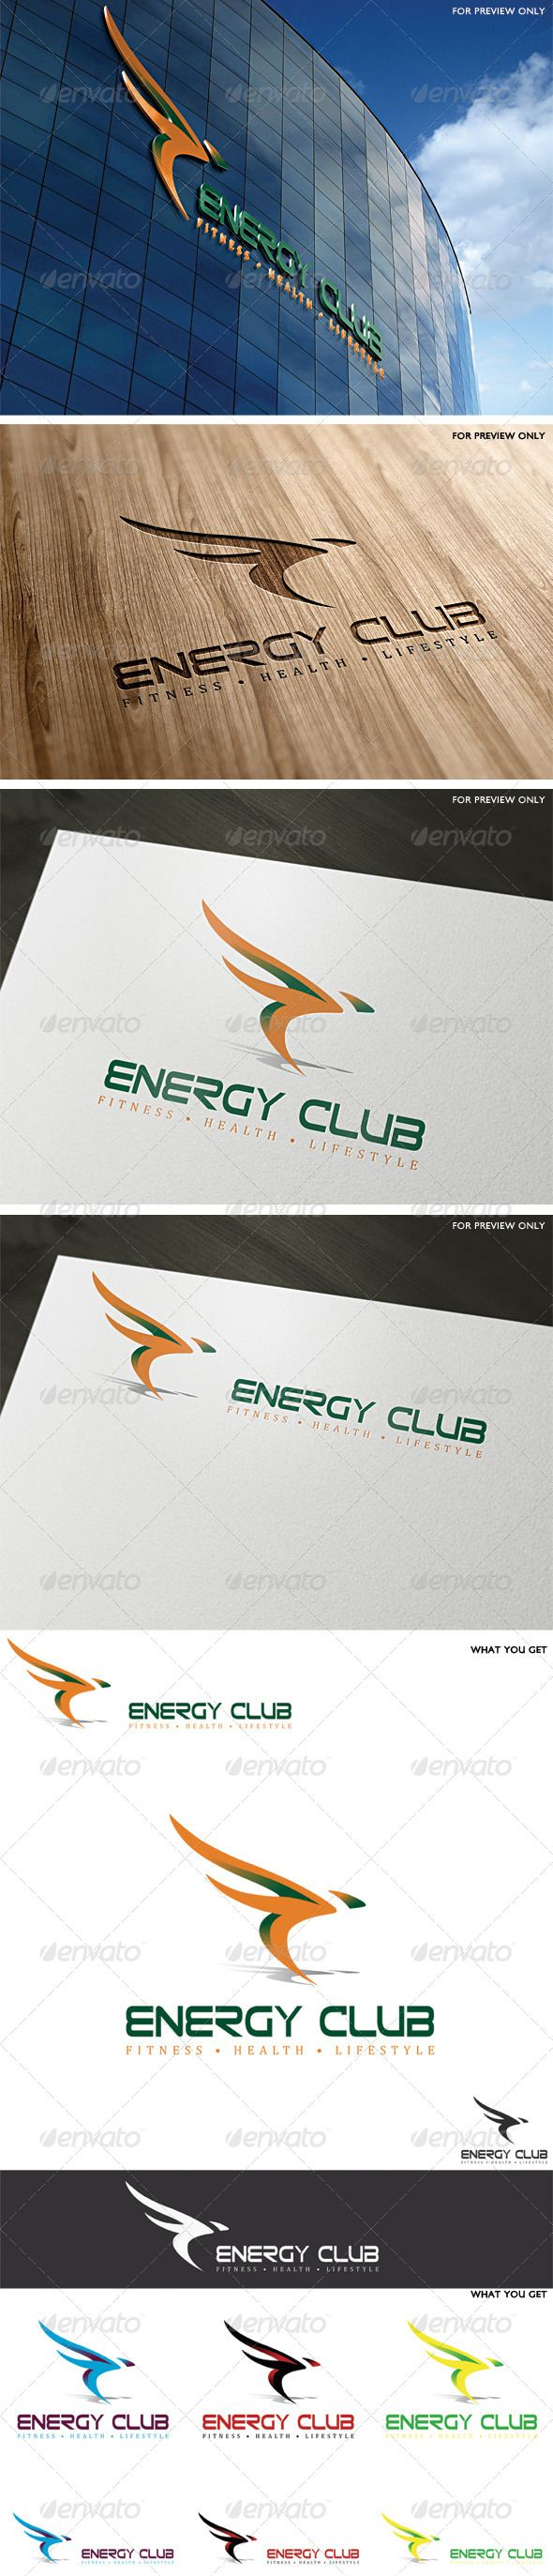 Energy Club Logo Template — Vector EPS #cycling #speed • Available here → https://graphicriver.net/item/energy-club-logo-template/4199225?ref=pxcr